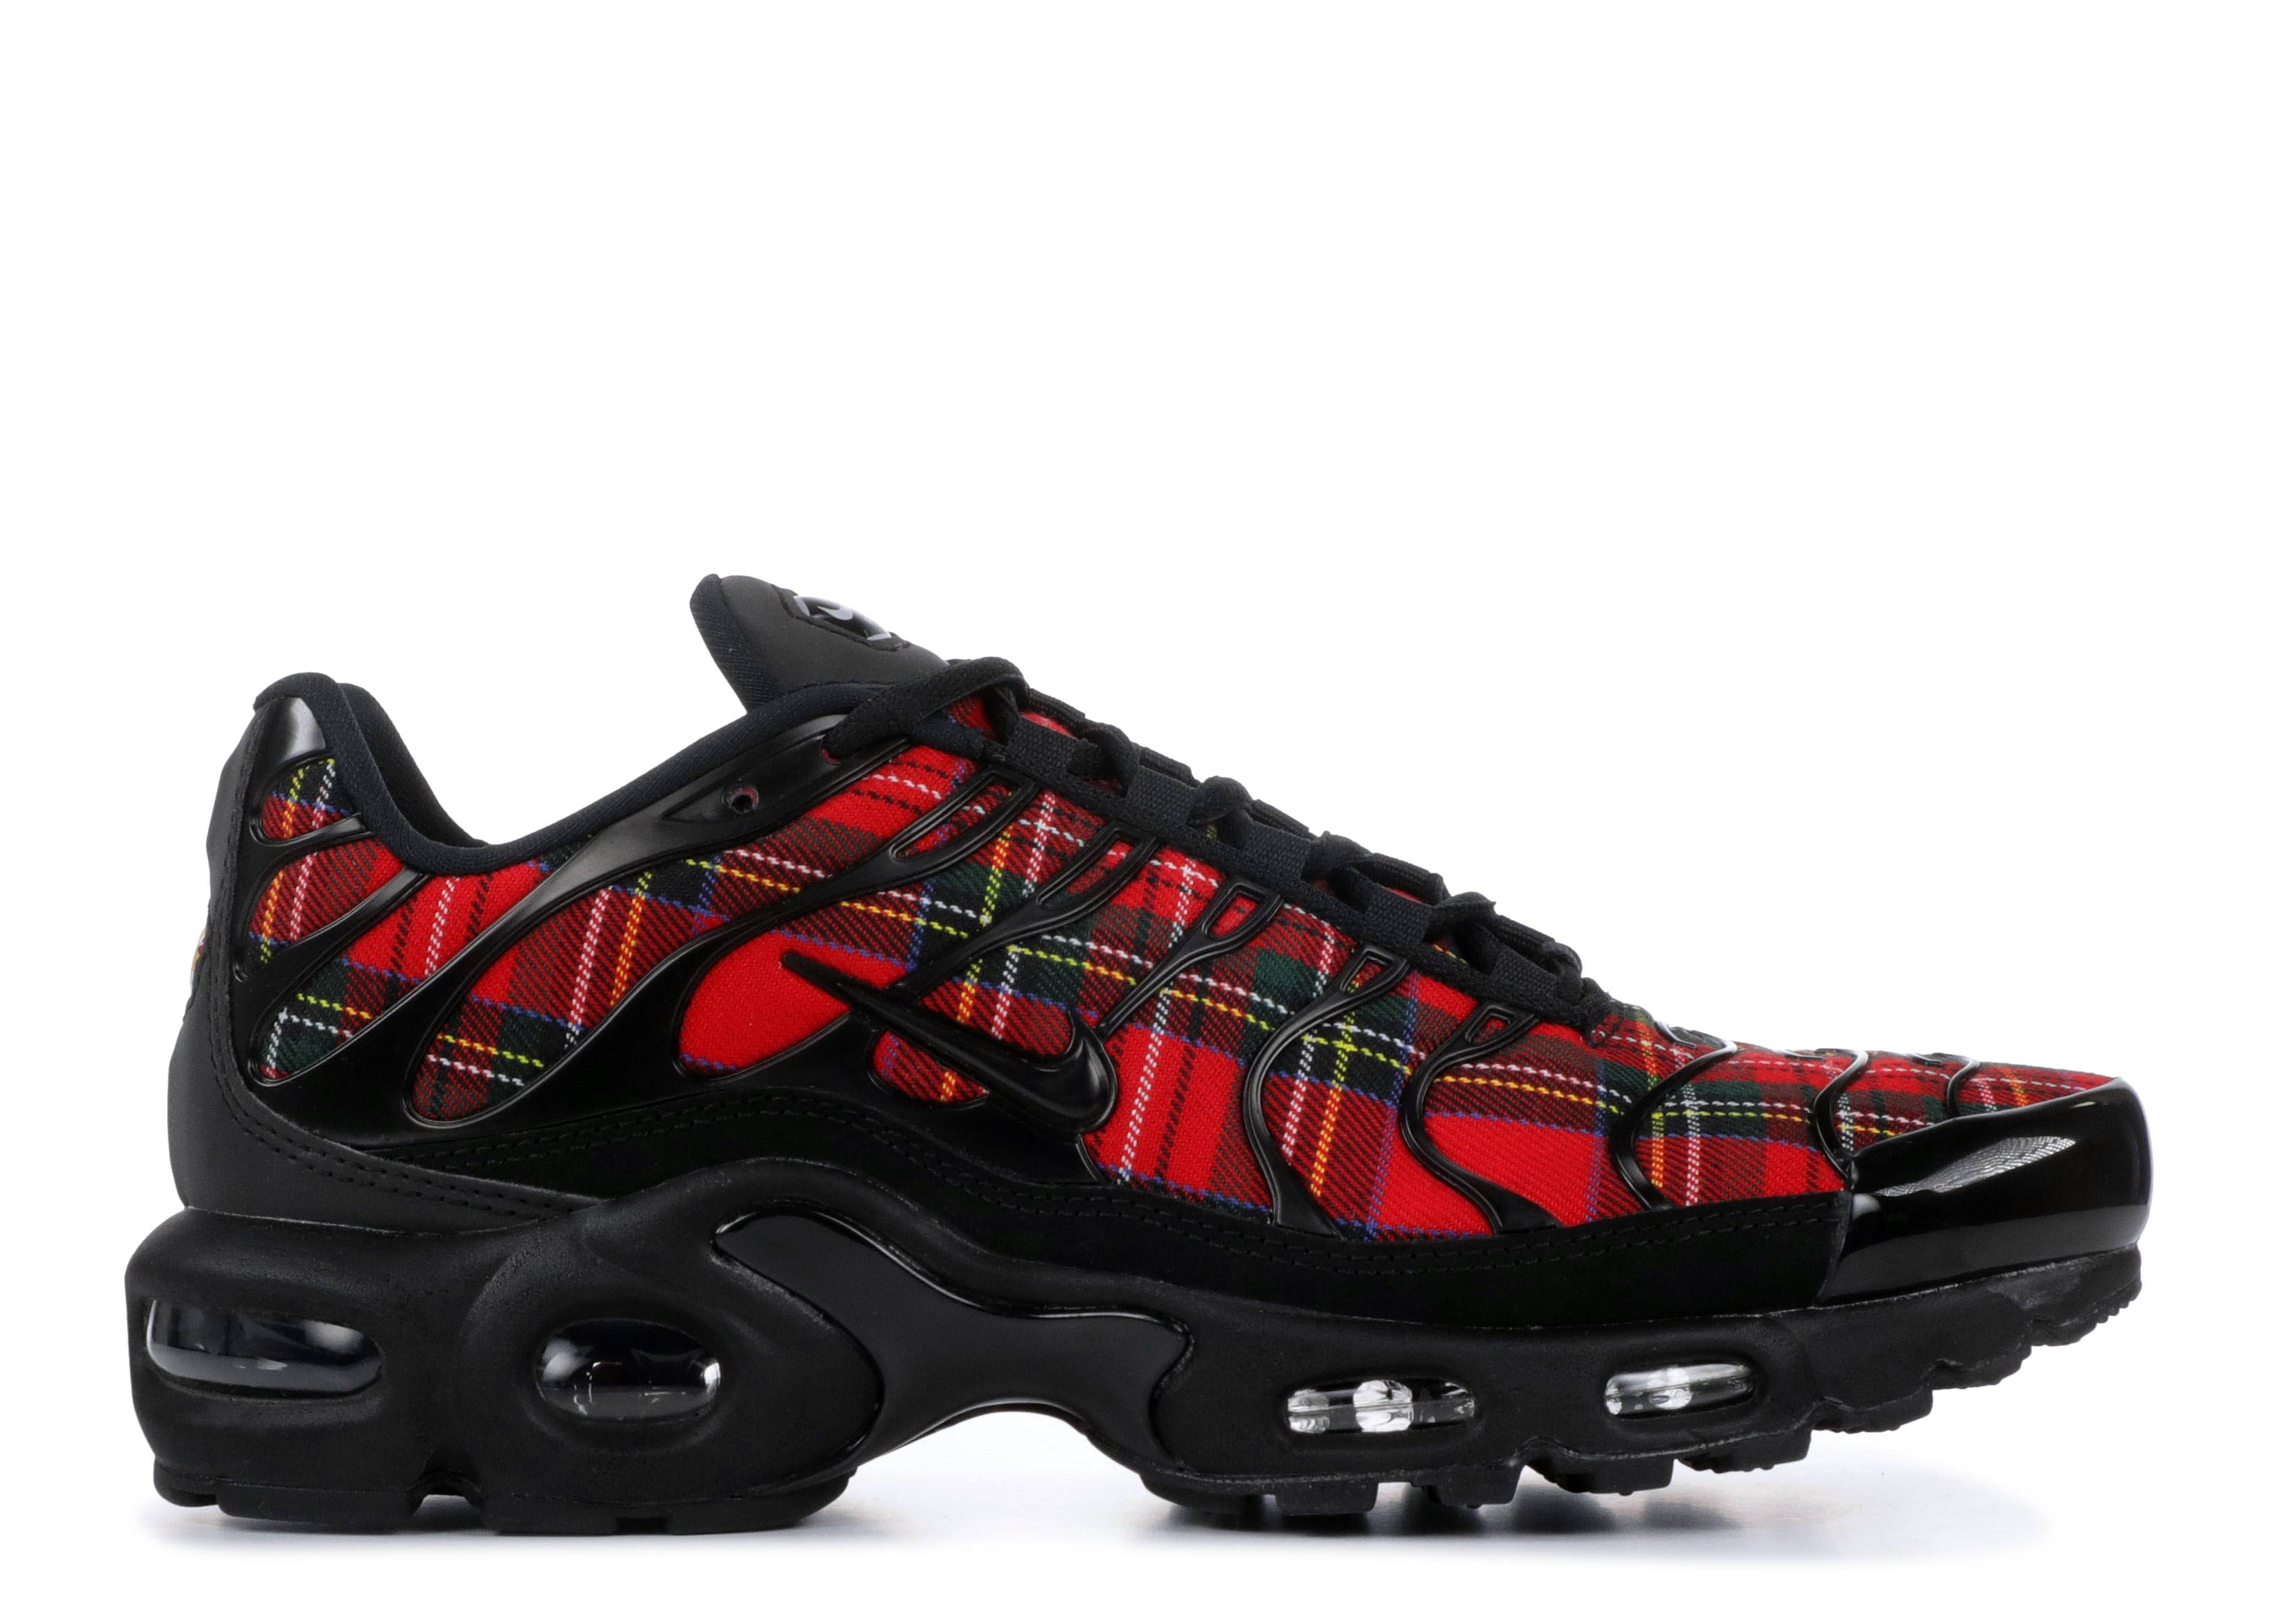 e29f7cd6fc Wmns Air Max Plus Tn Se Tartan - Nike - av9955 001 - black/black ...